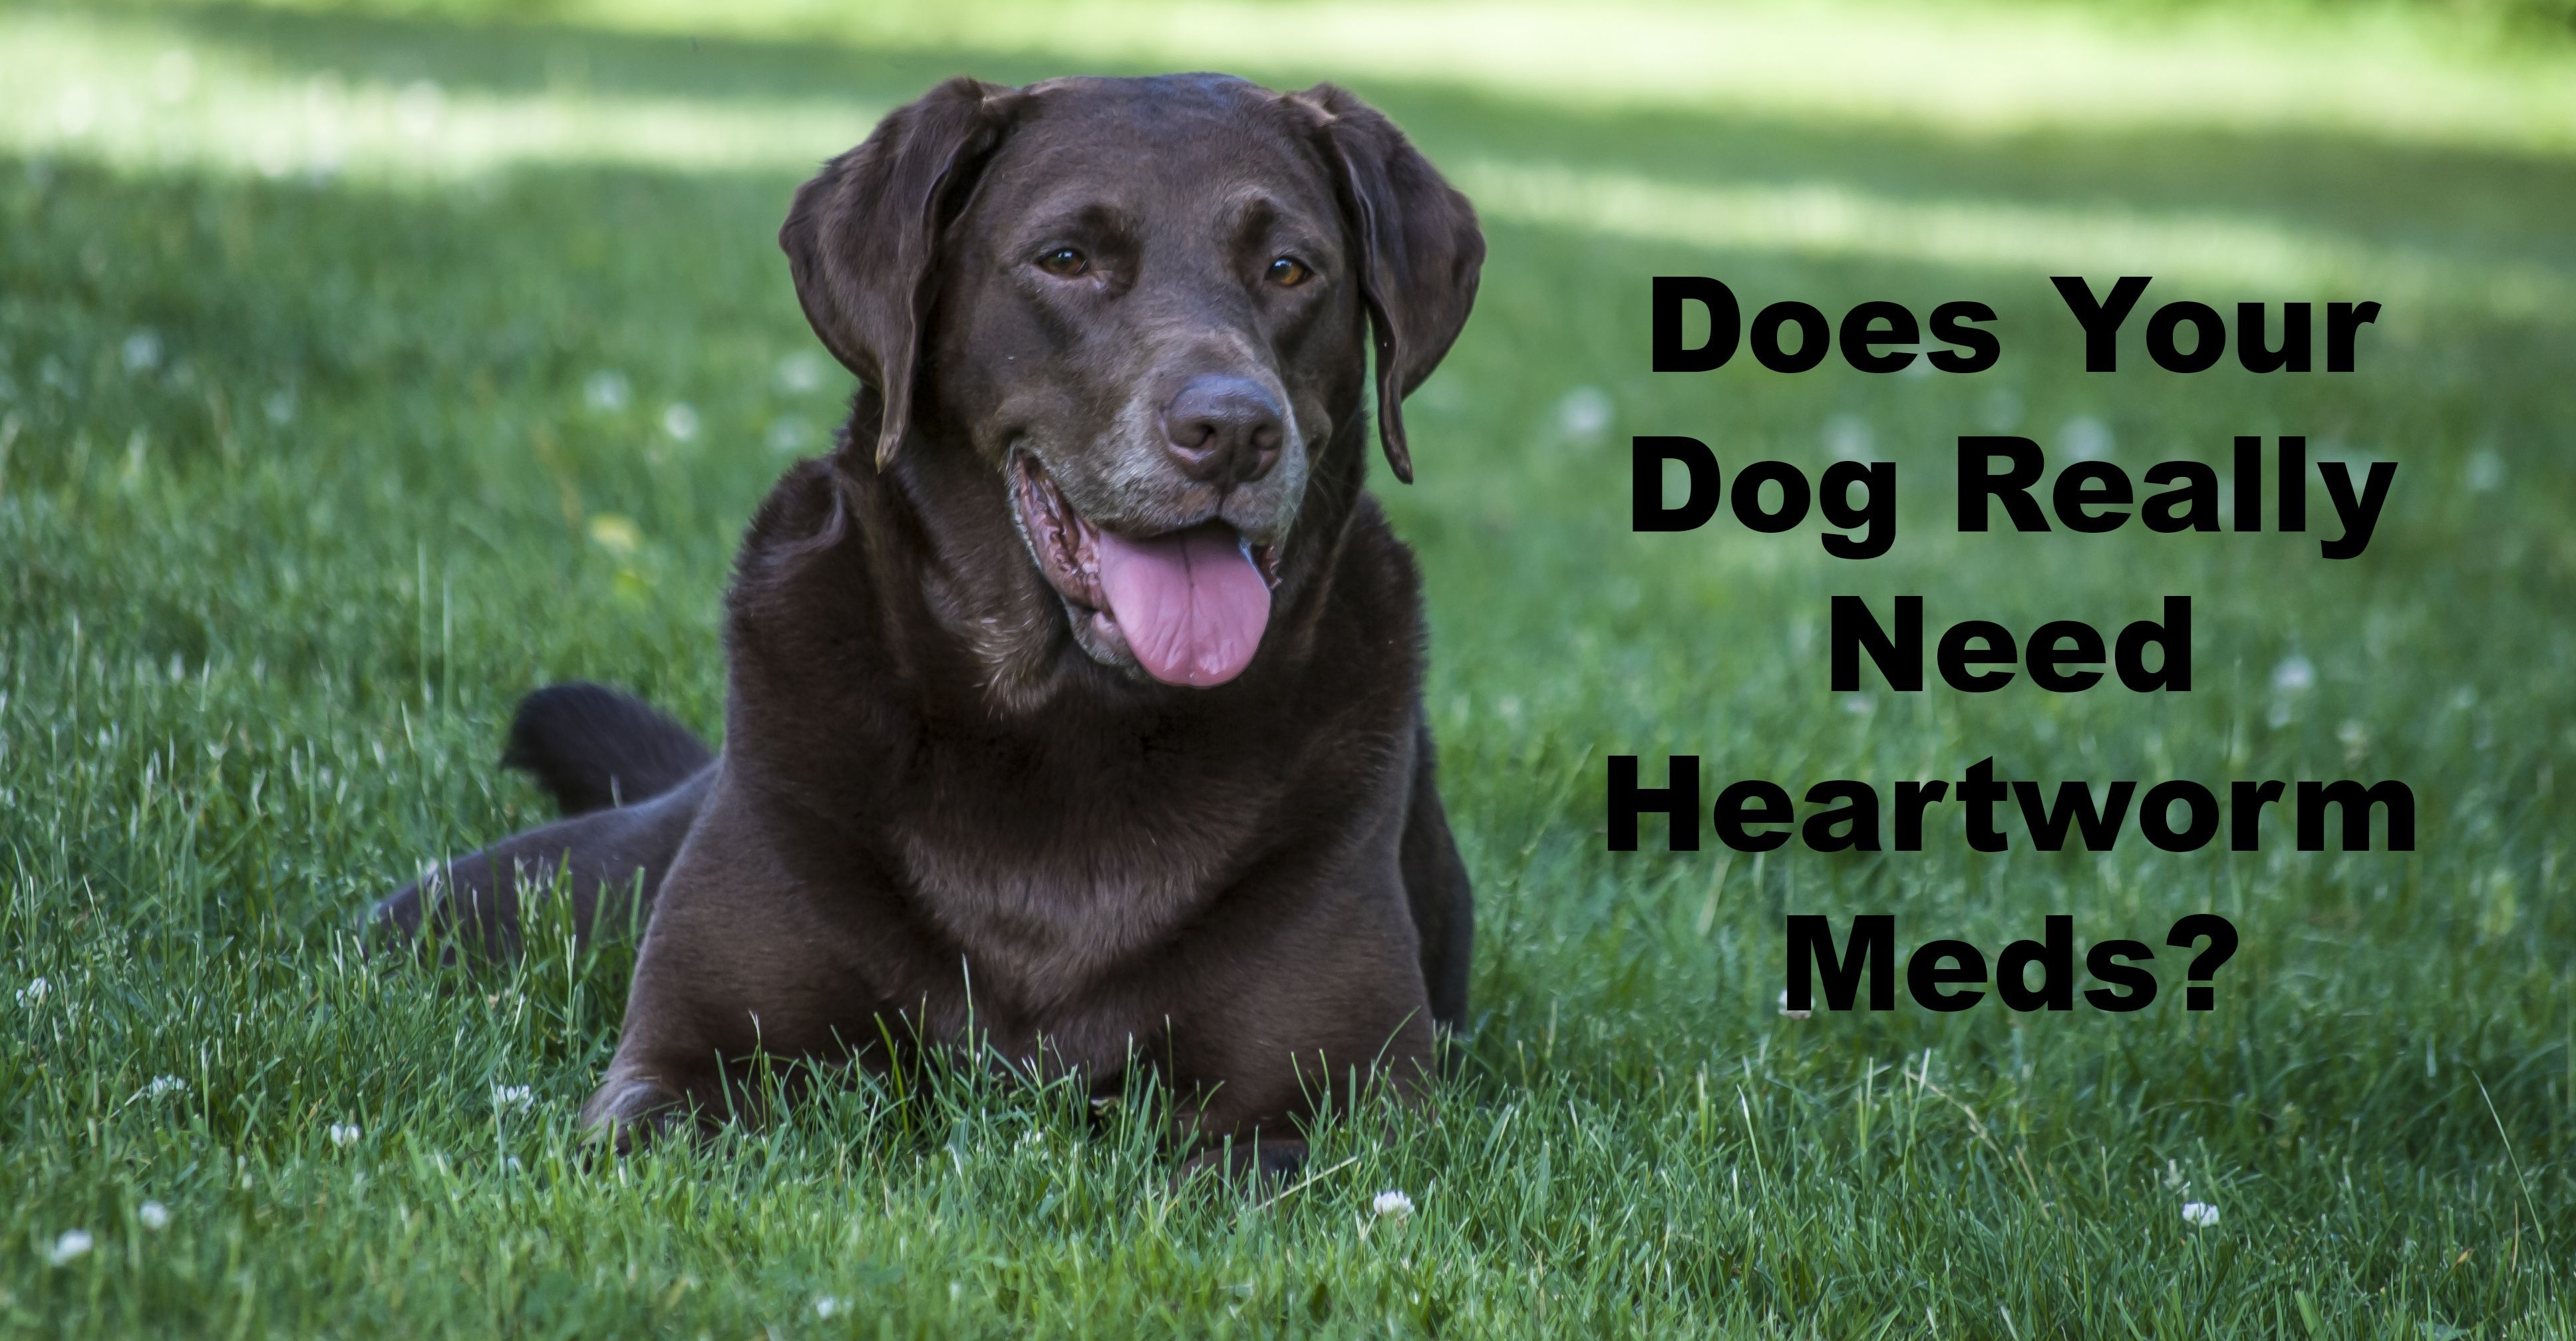 Heartworm Medication Part 1 Truths, Omissions and Profits